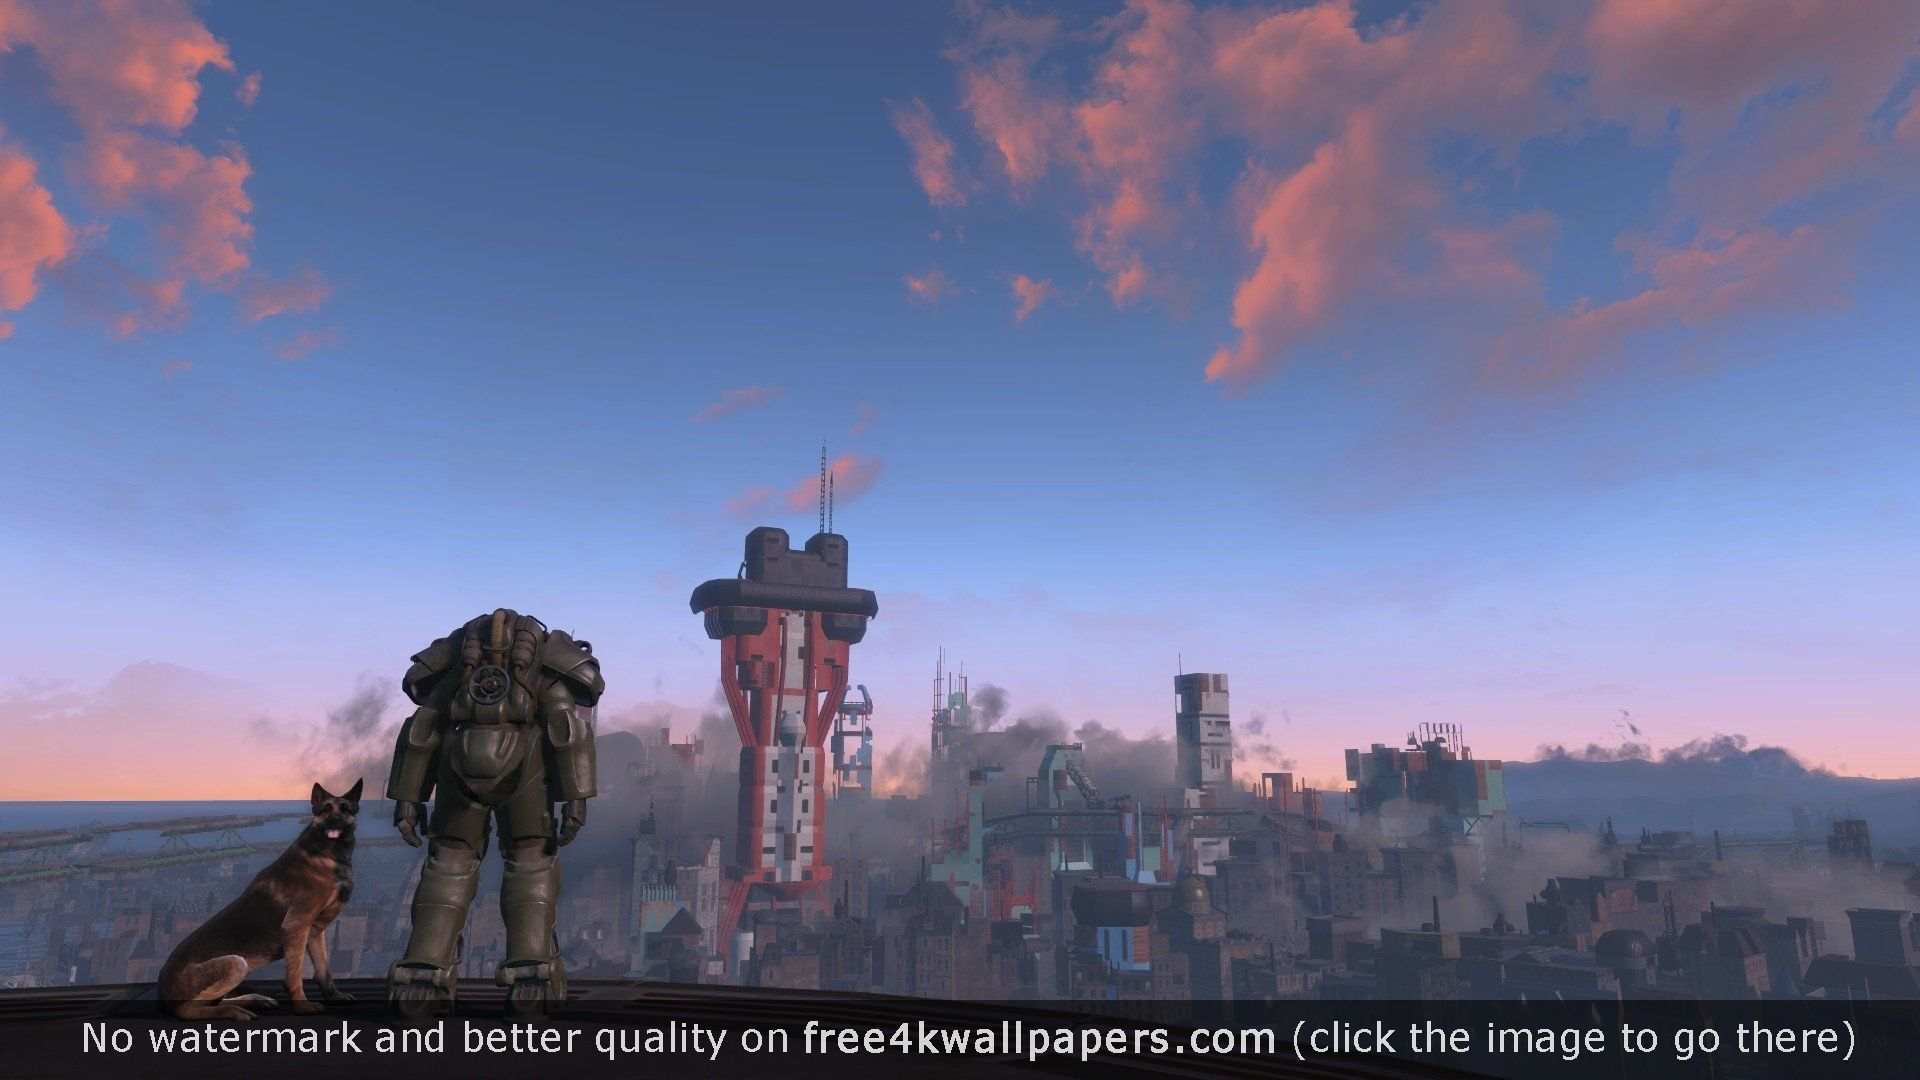 Fallout 4 4K or HD wallpaper for your PC Mac or Mobile device 1920x1080